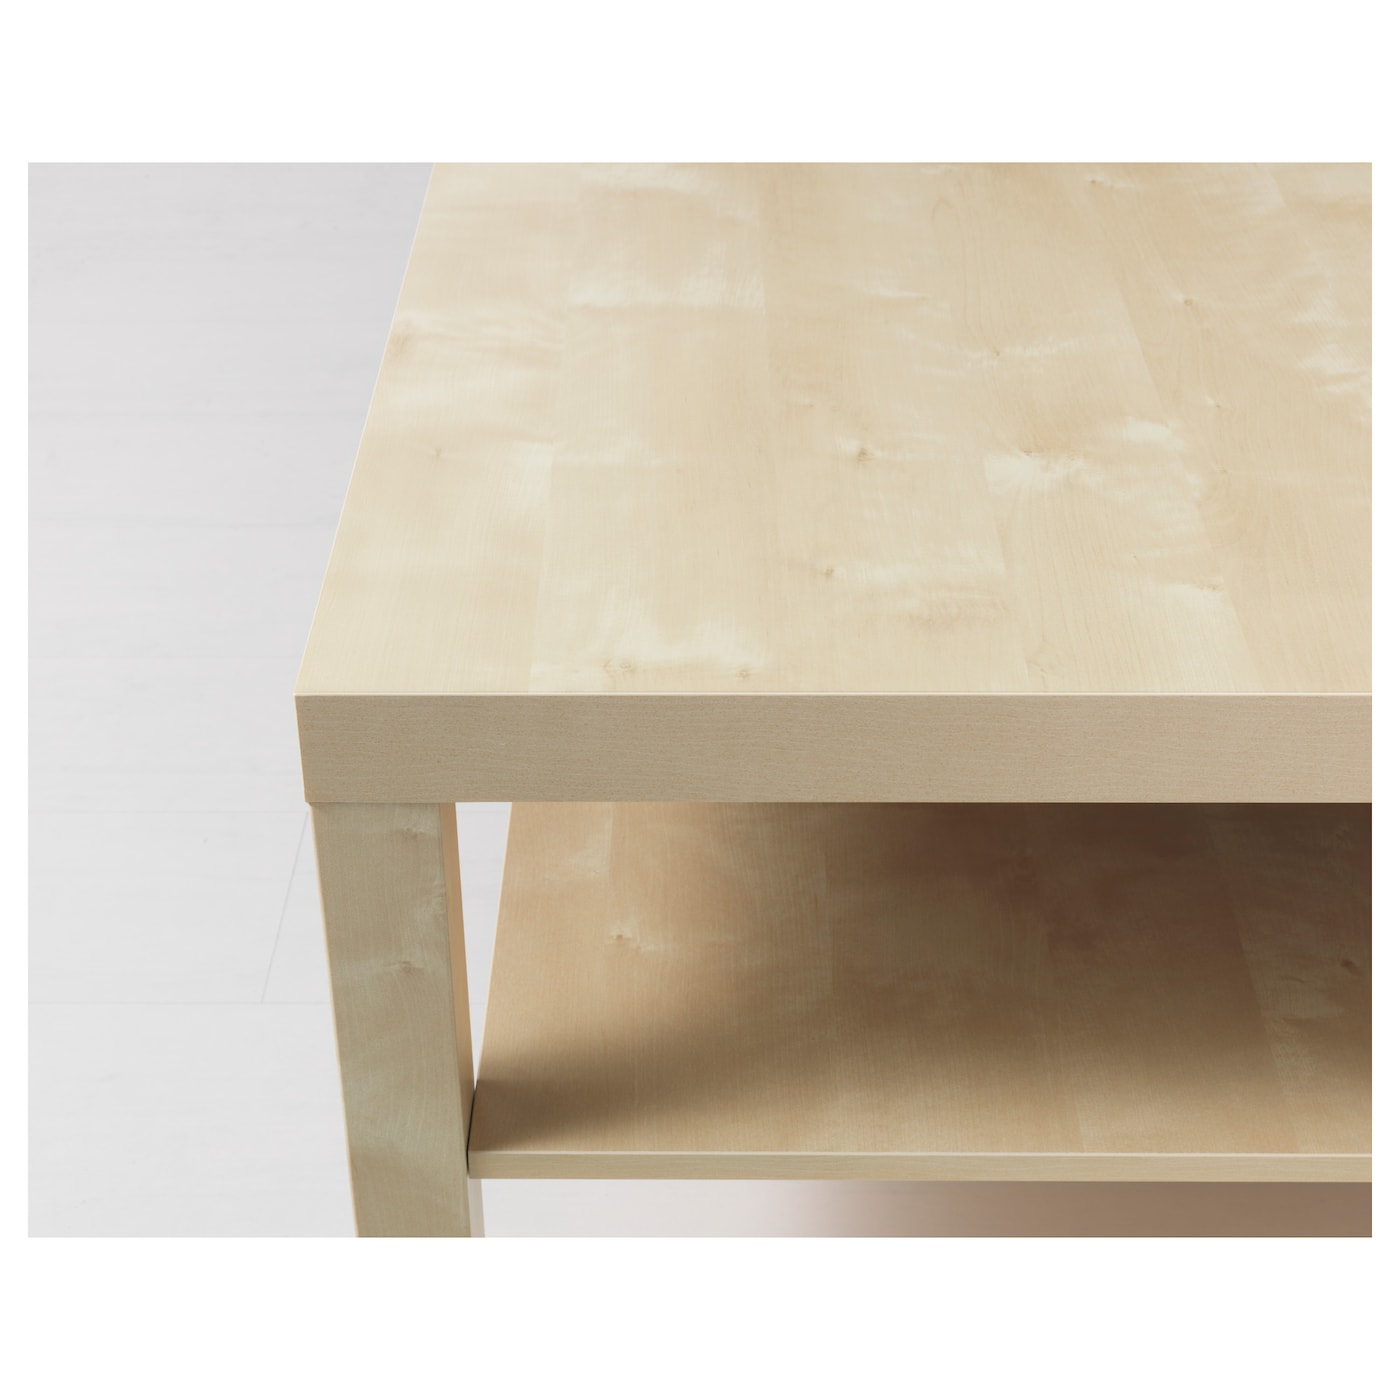 Lack coffee table birch effect 118x78 cm ikea - Table basse transformable en table haute ikea ...